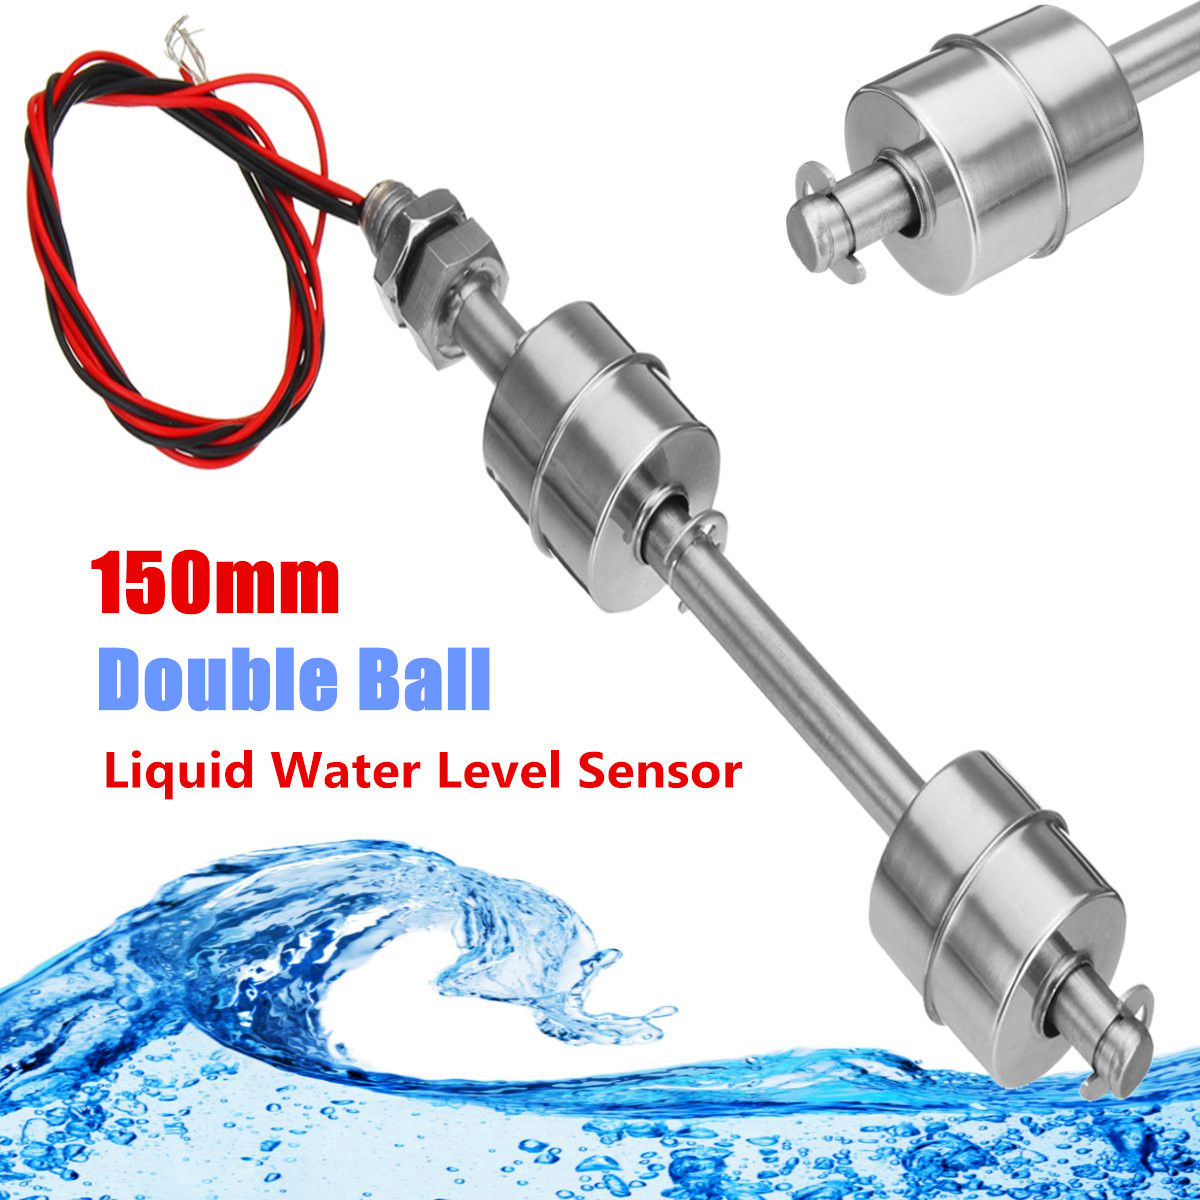 Liquid Float Switch Water Level Sensor Double Ball 150mm 304 For Fish Tank Pool